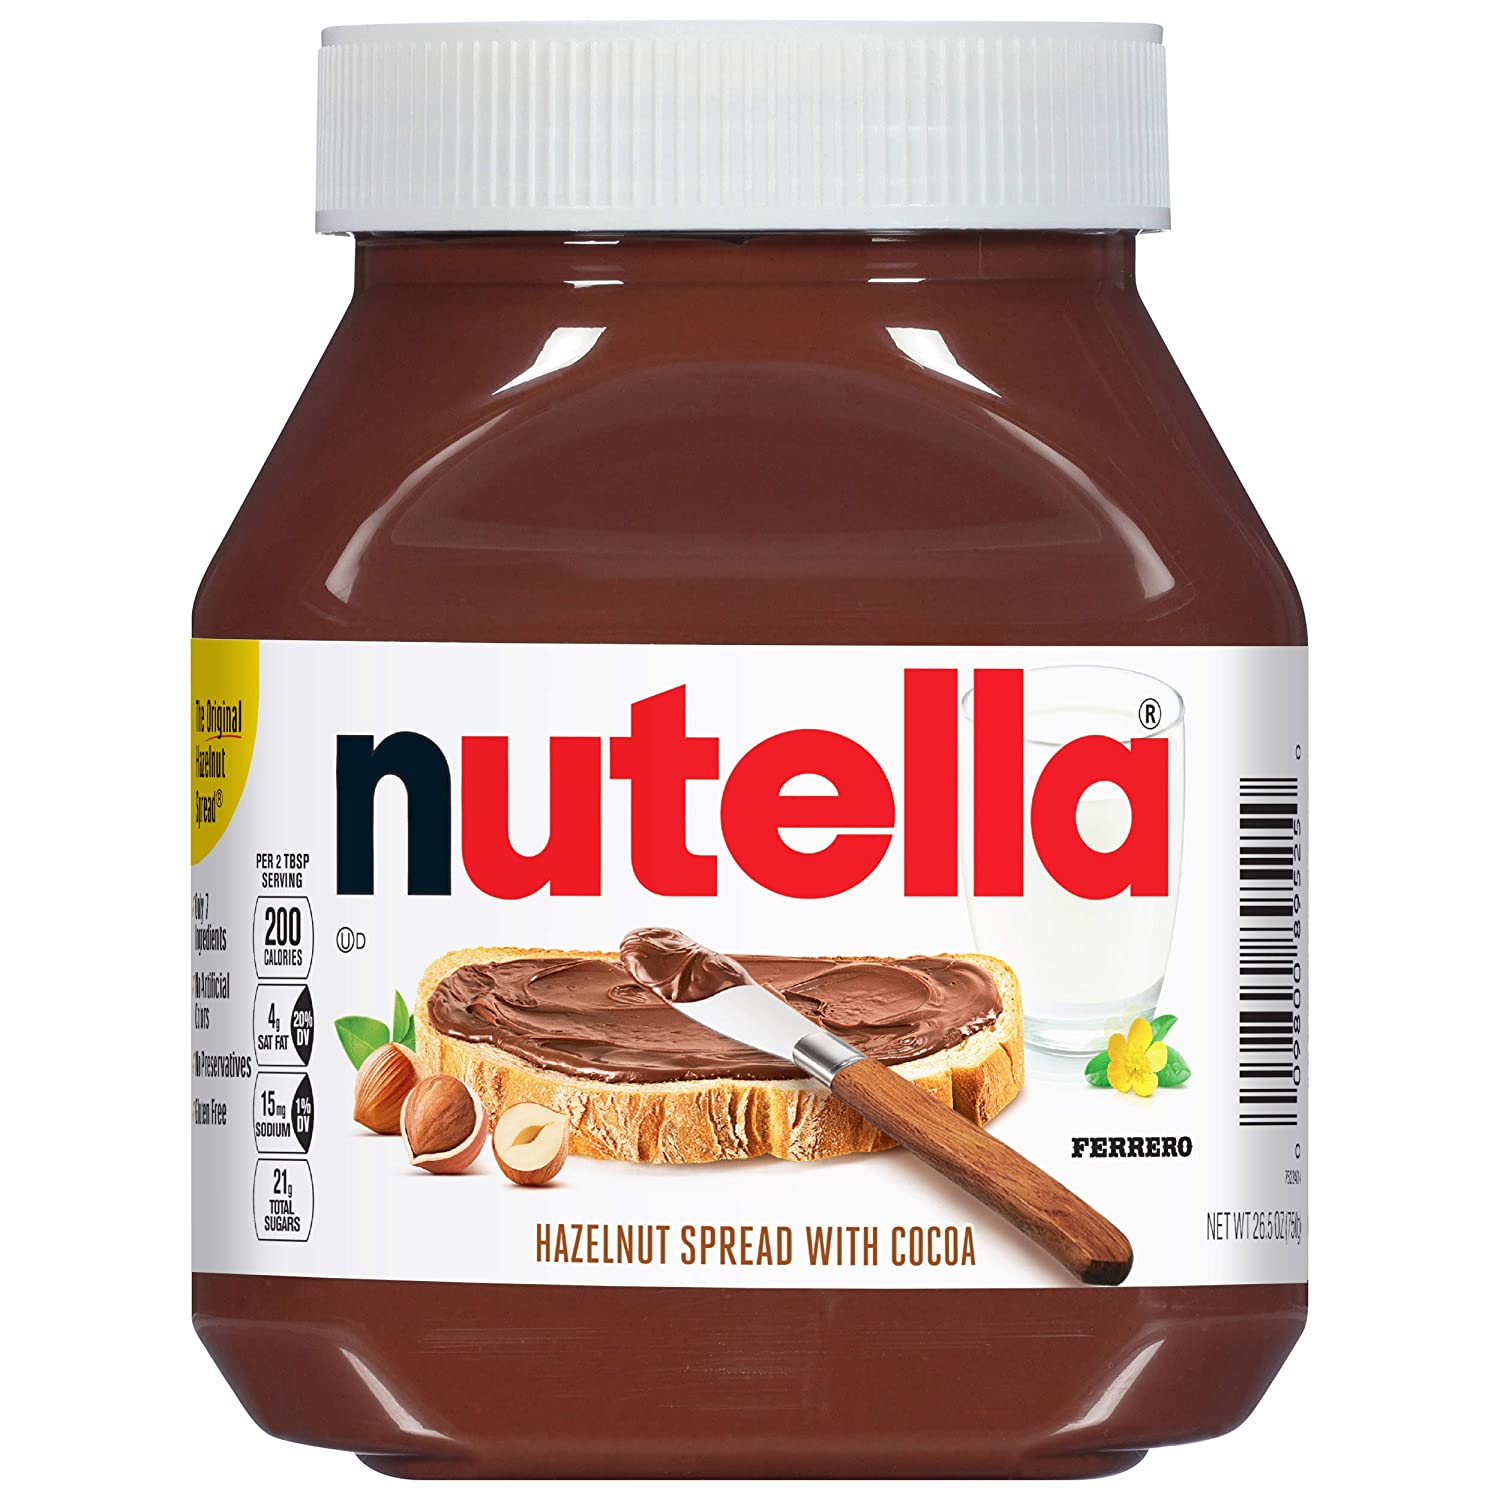 Nutella Chocolate Hazelnut Spread, Perfect Topping for Pancakes, 26.5 Oz (Pack of 1)